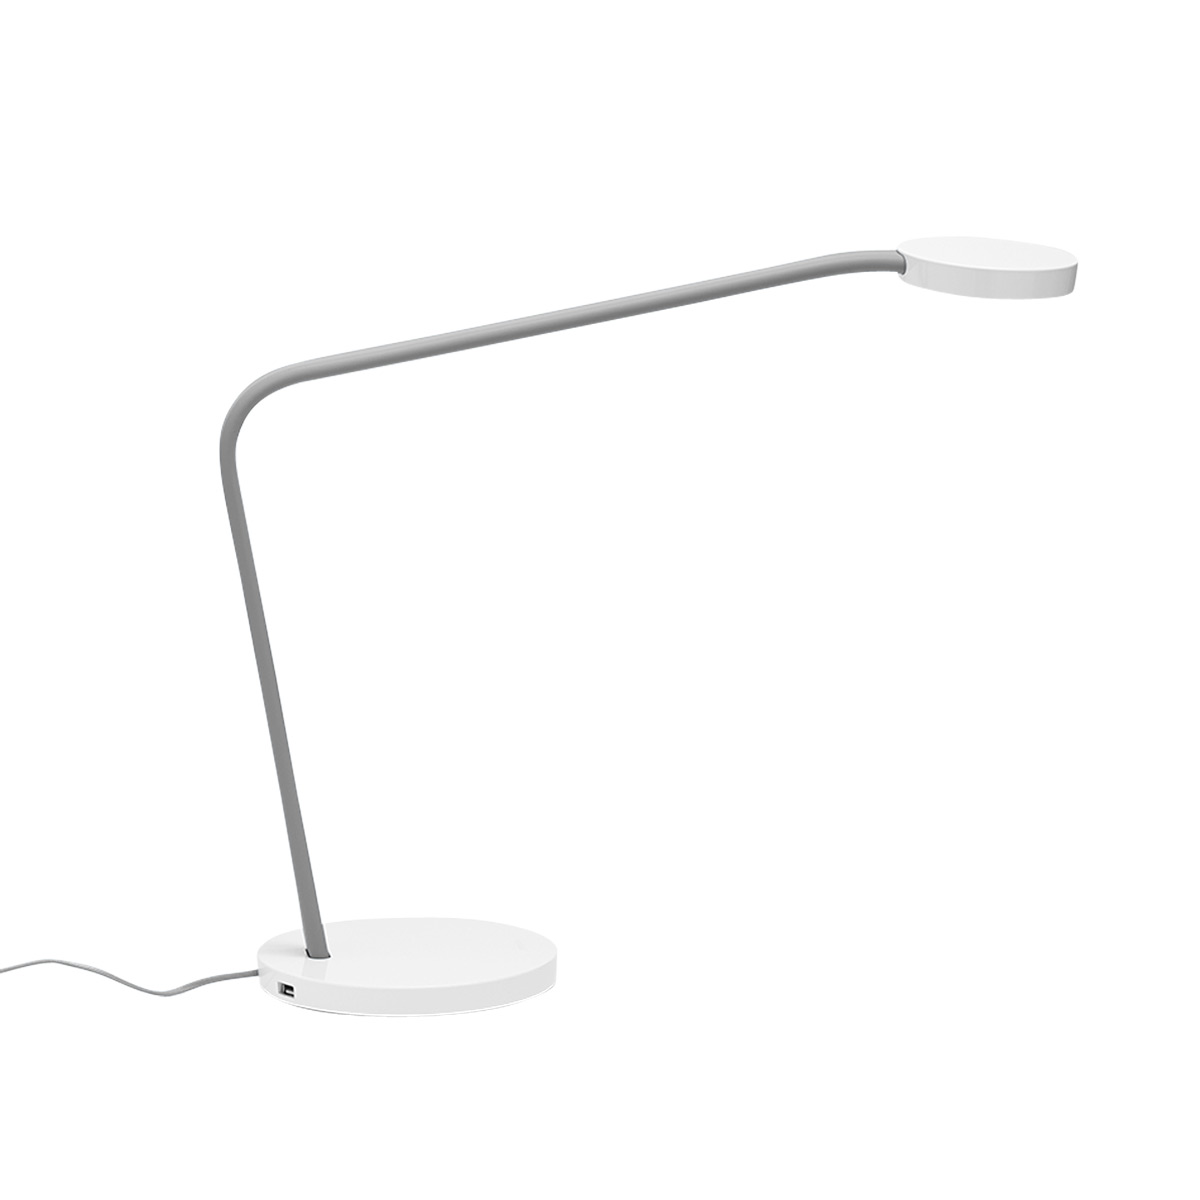 Limber USB Desk Lamp